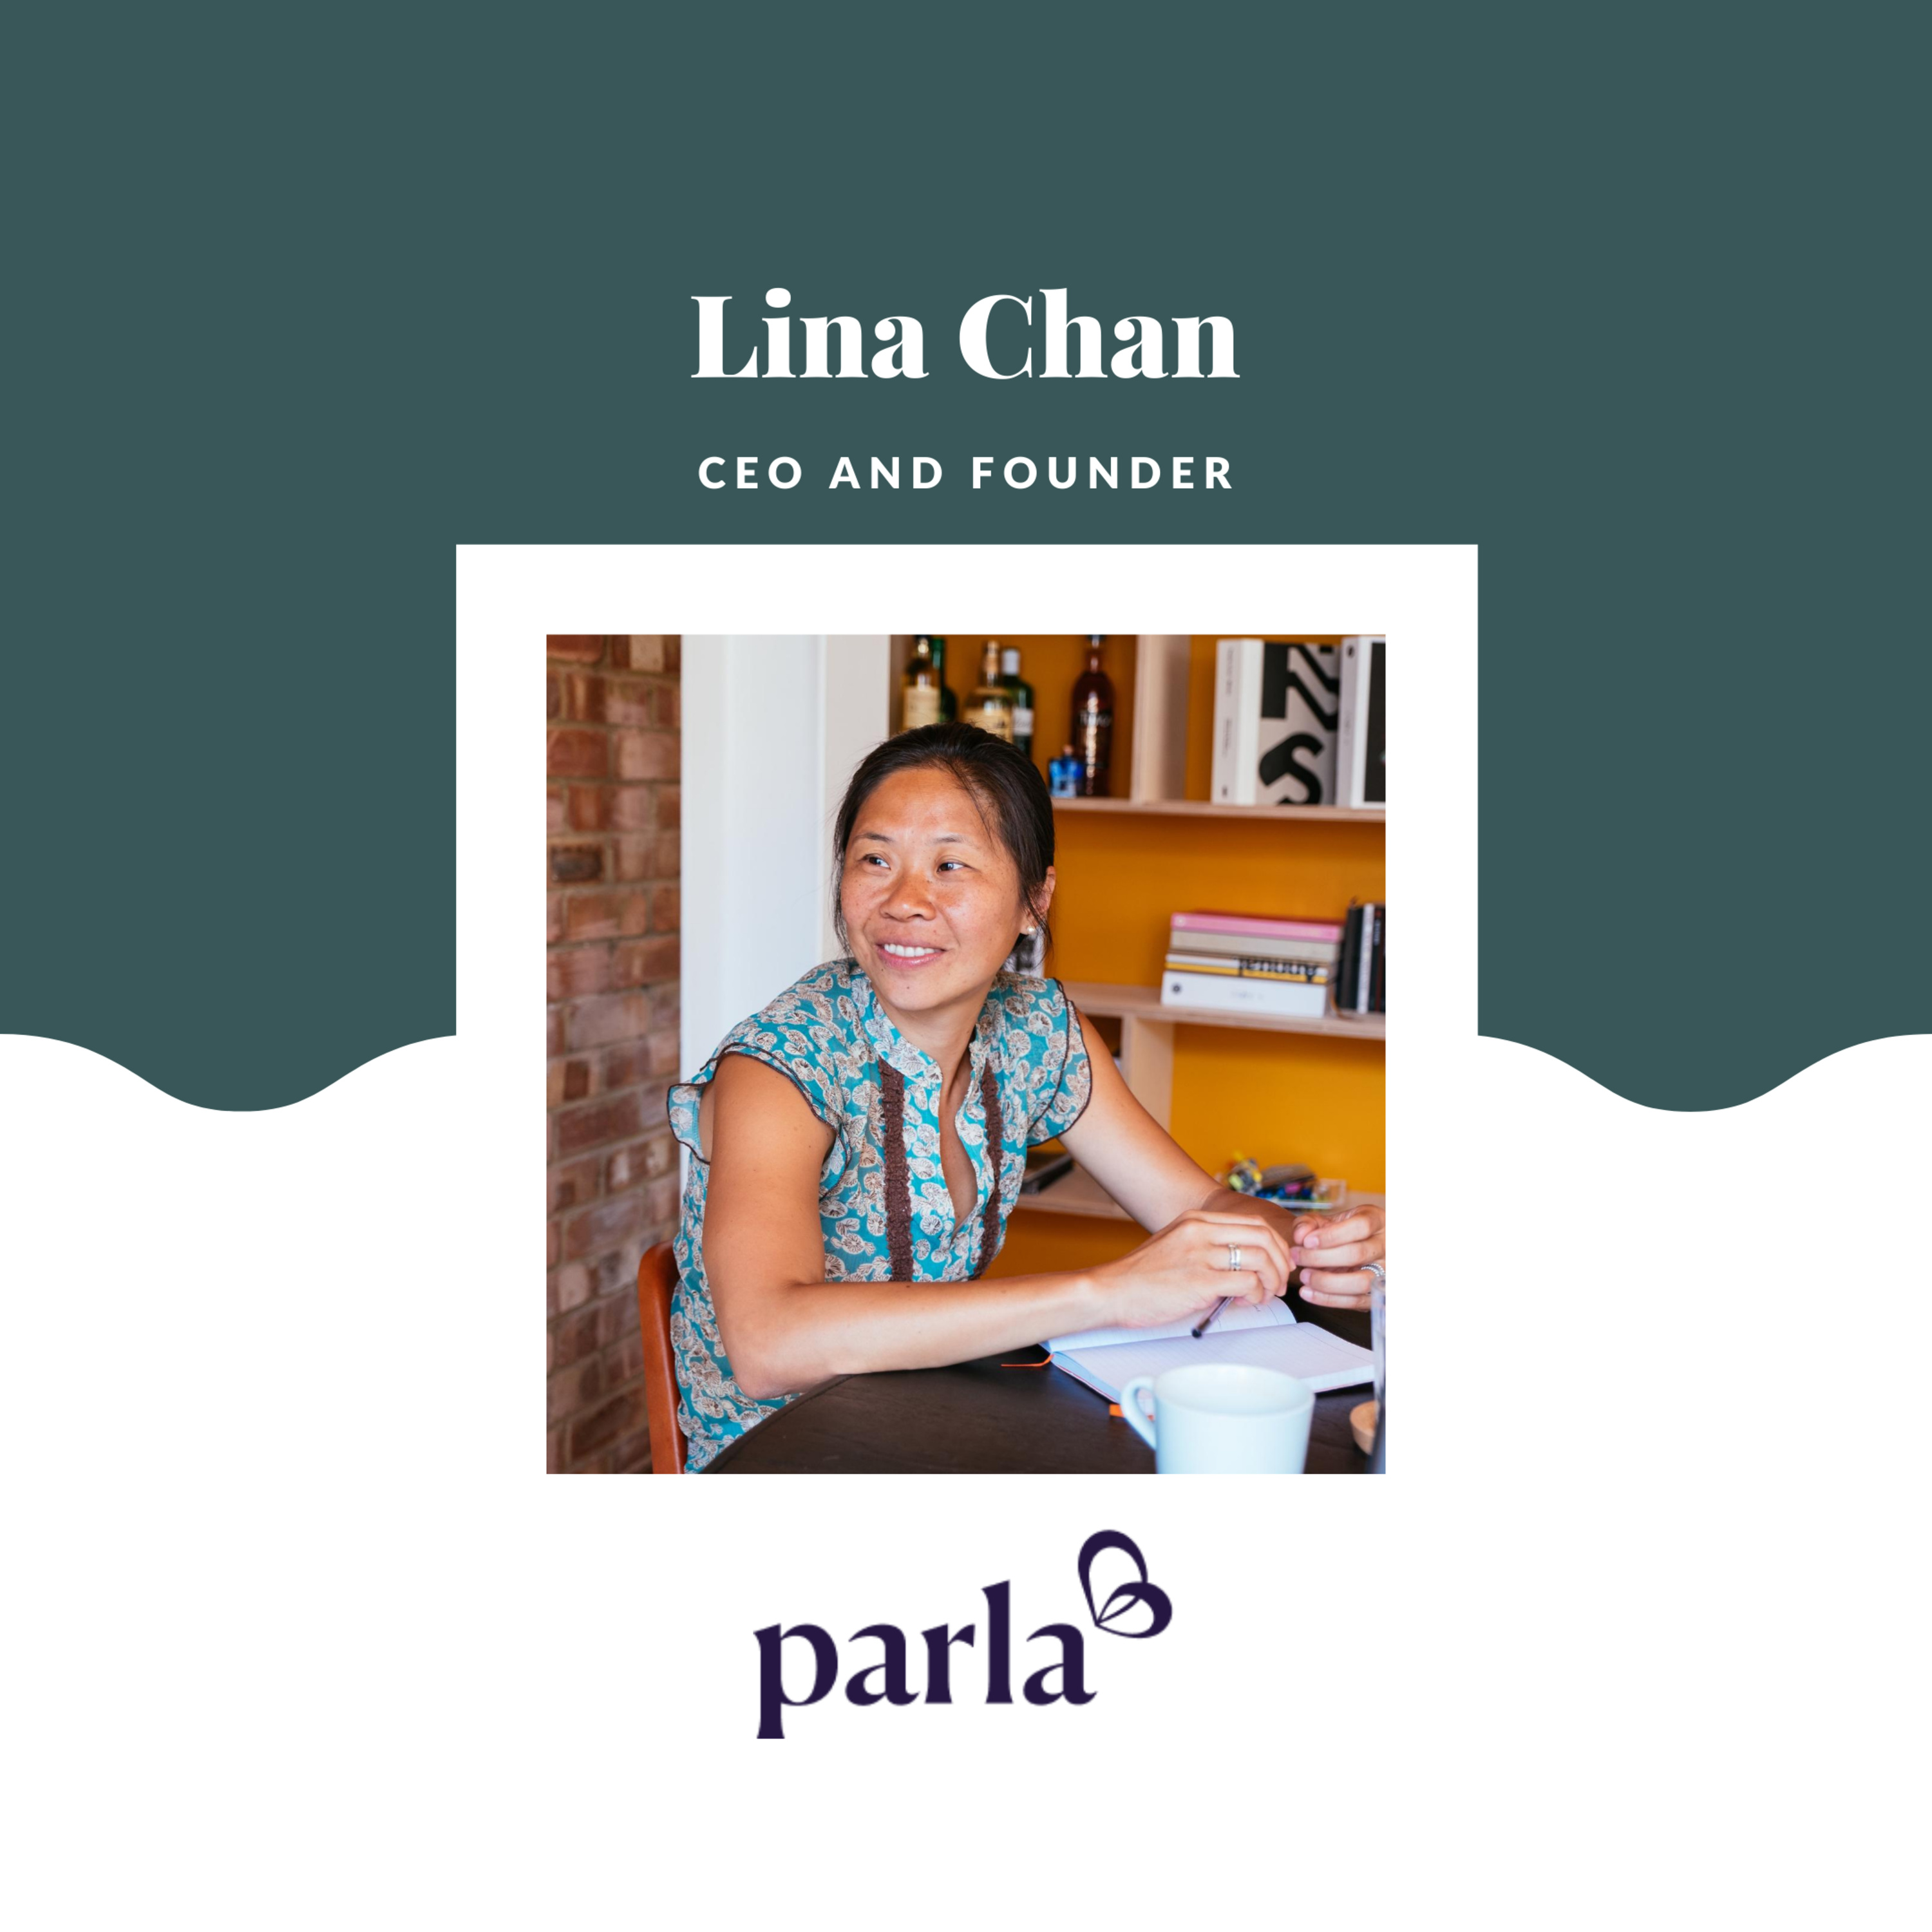 """""""Build something you are passionate about because in a day there will be more reasons to not do it than to do it."""" - Lina Chan, CEO and Founder at Parla"""